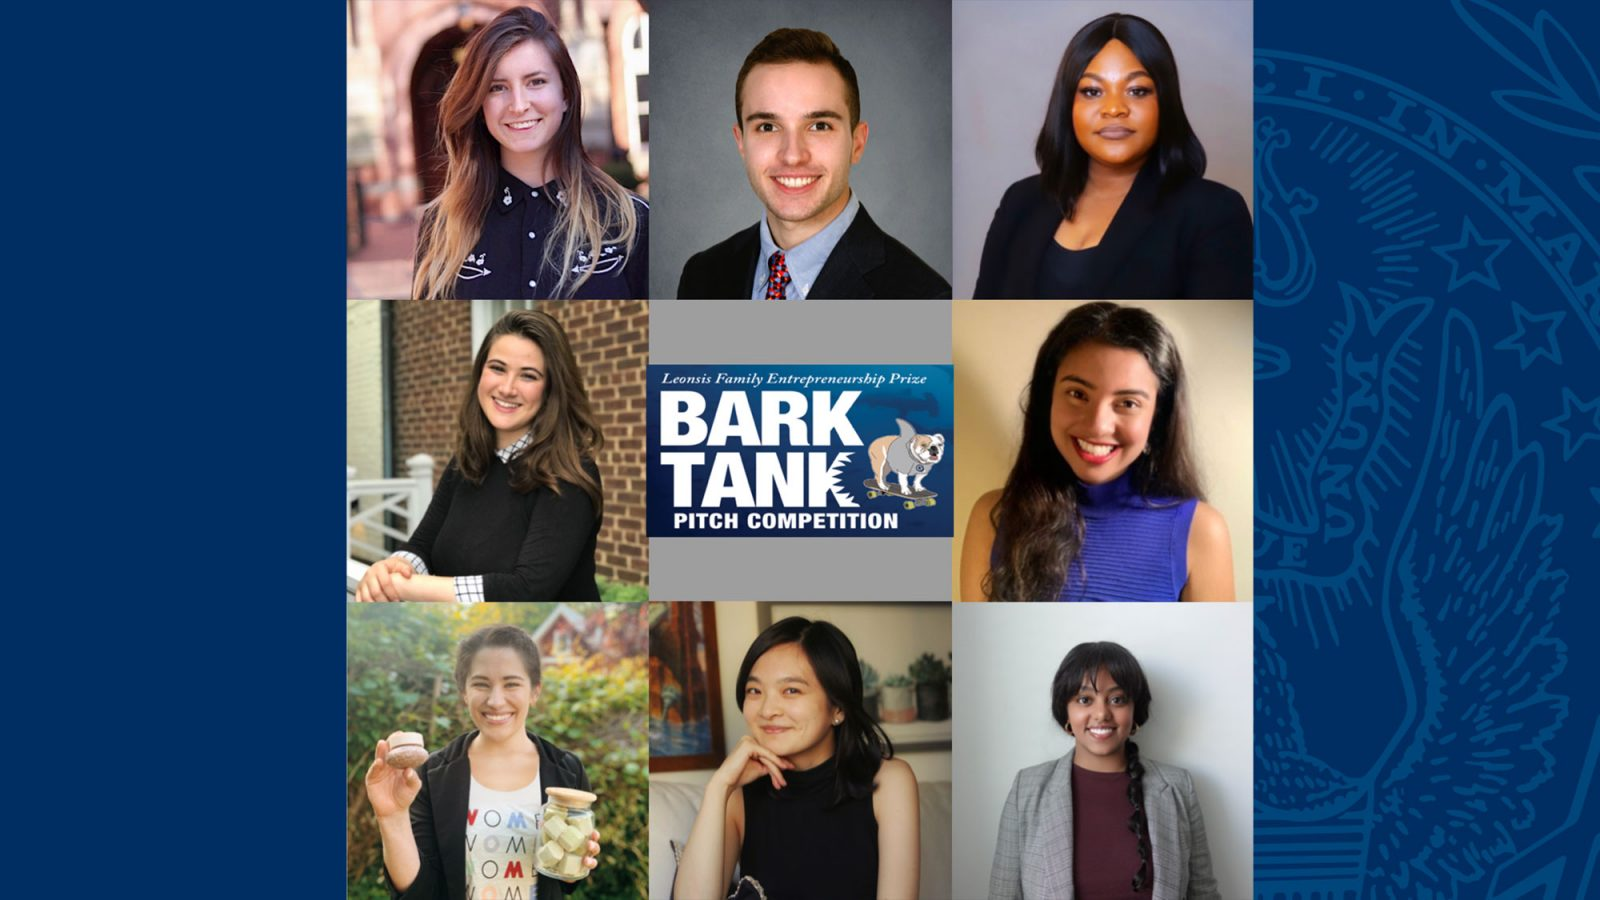 images of students with a Bark Tank logo in the middle.